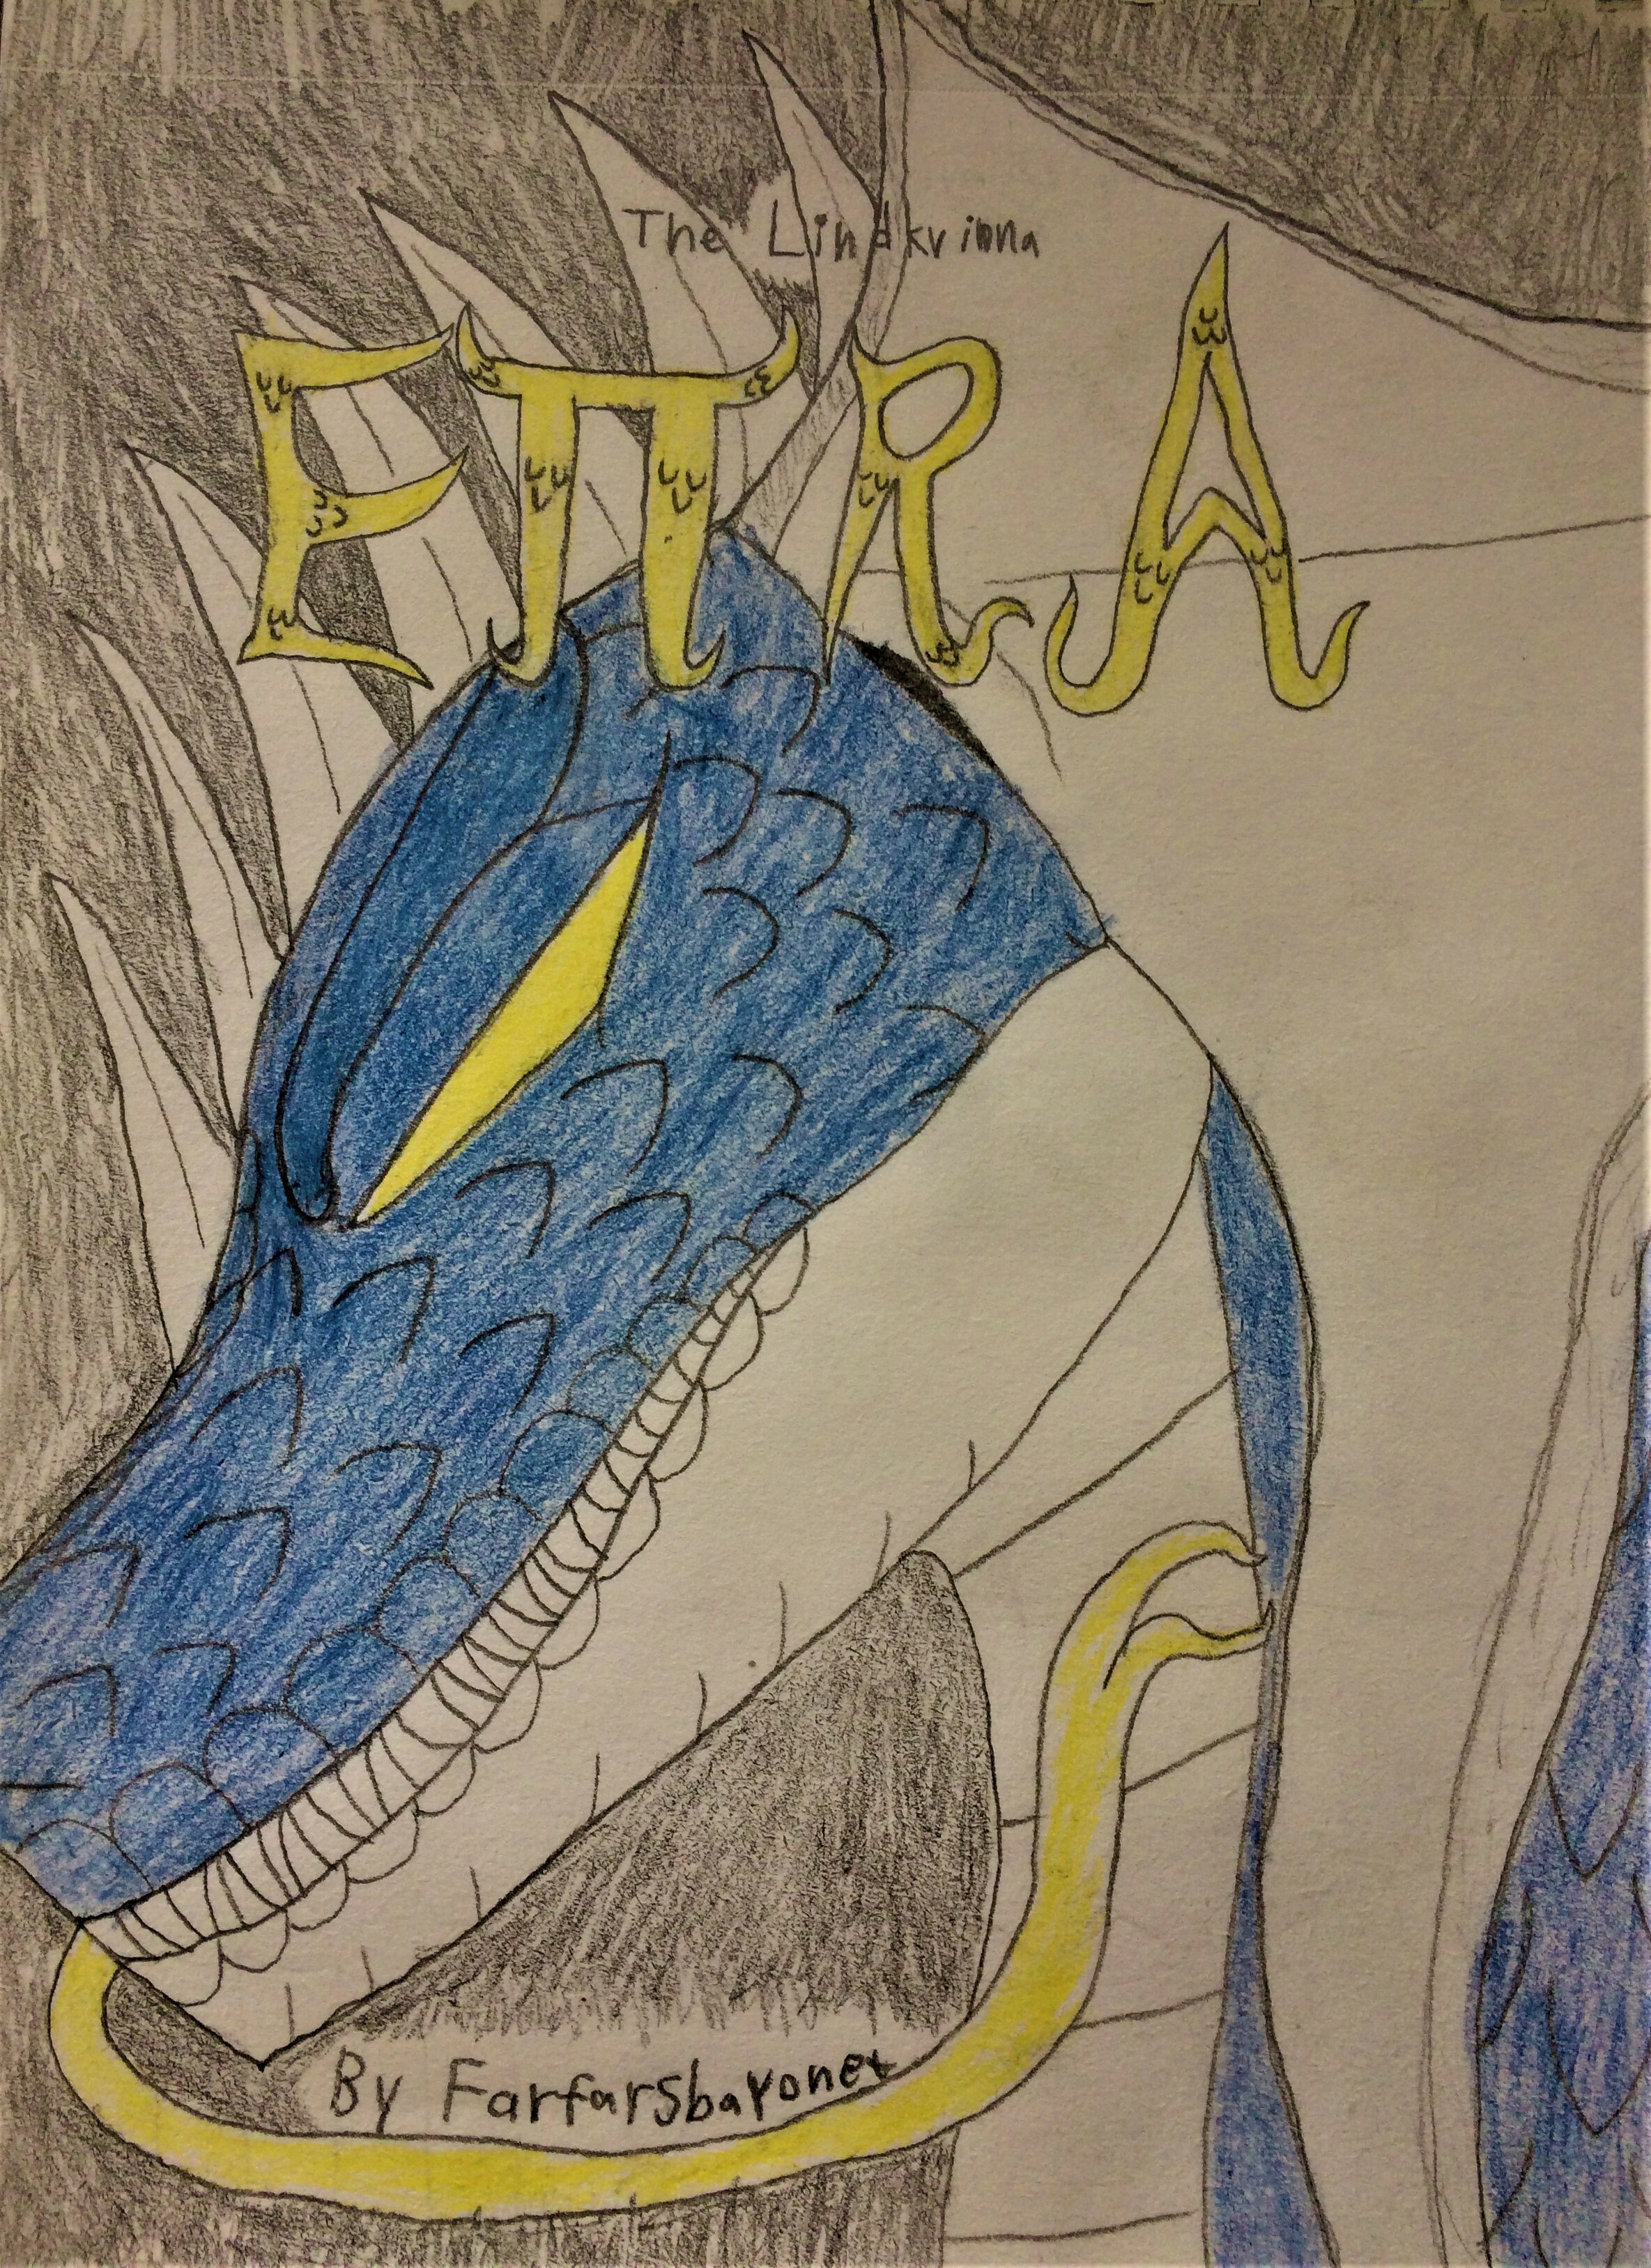 Ettra the Lindkvinna cover